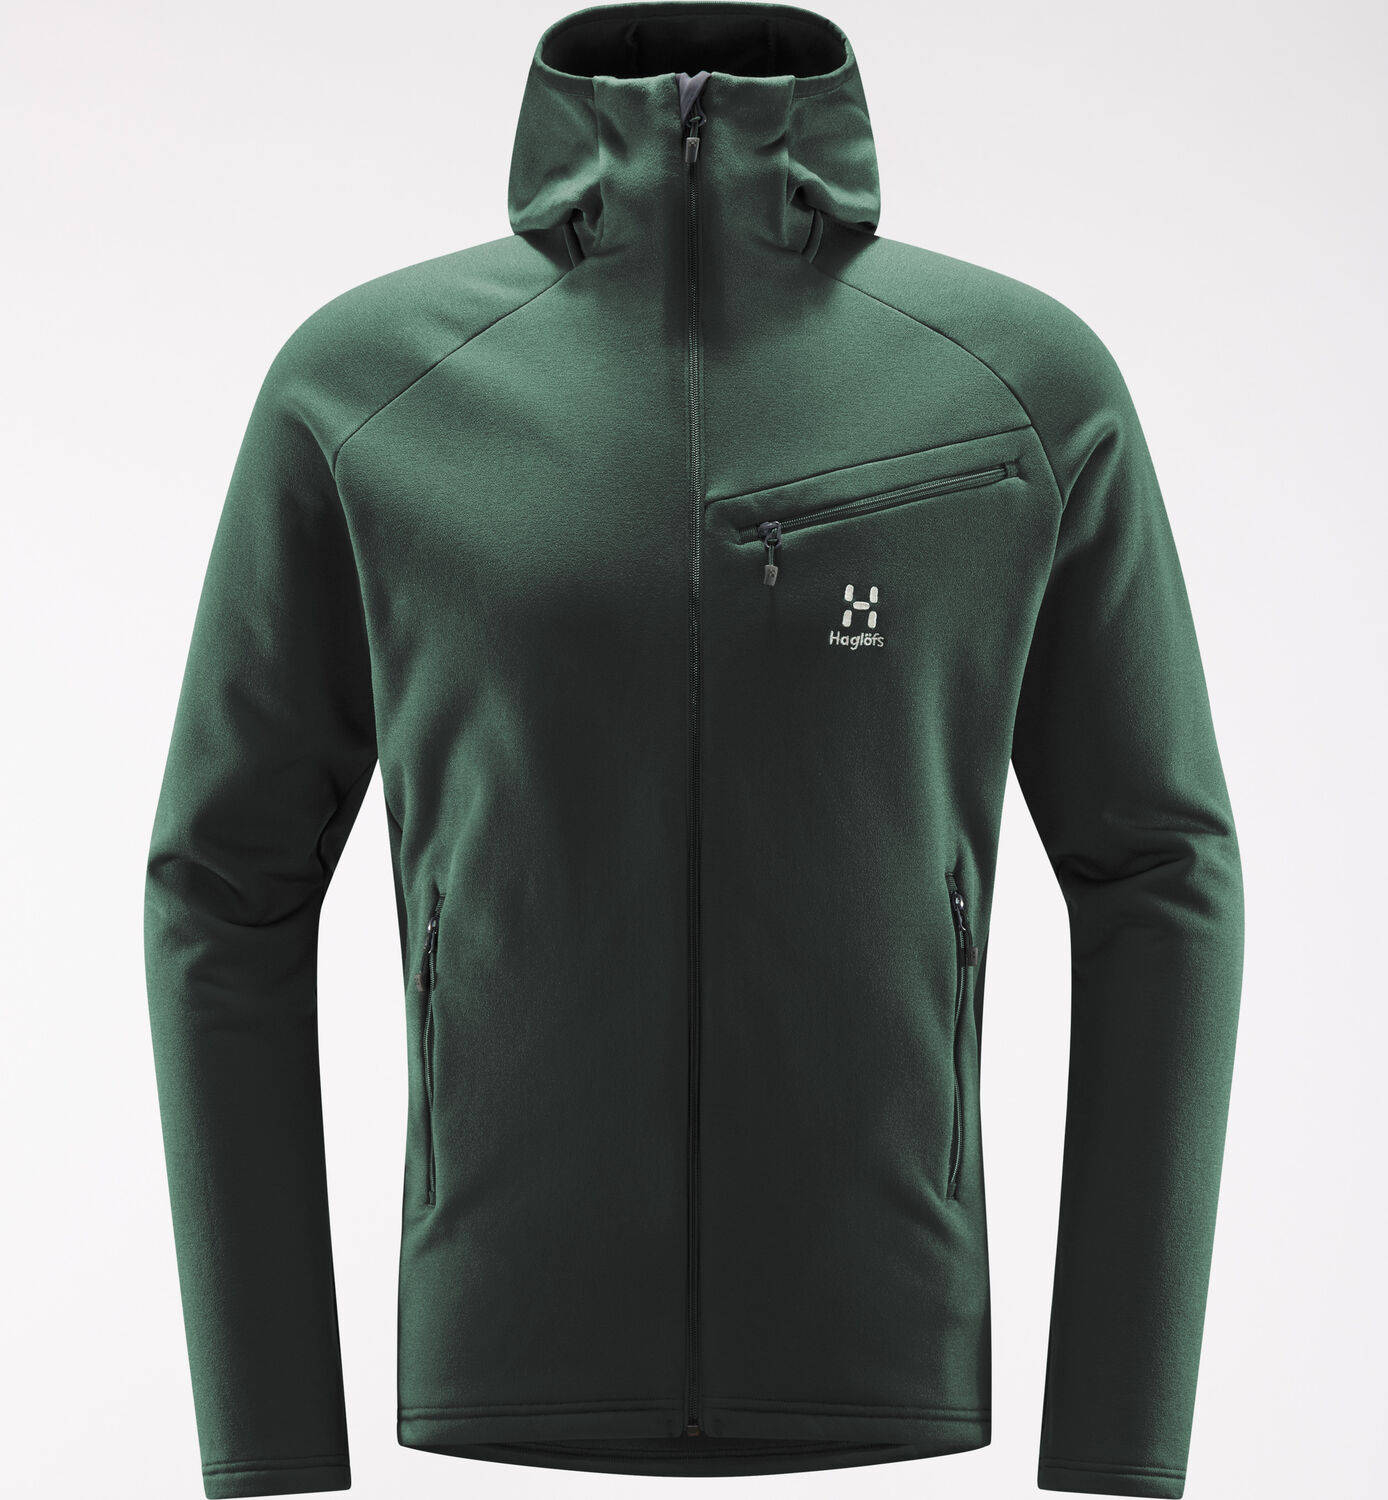 baselayer jacket